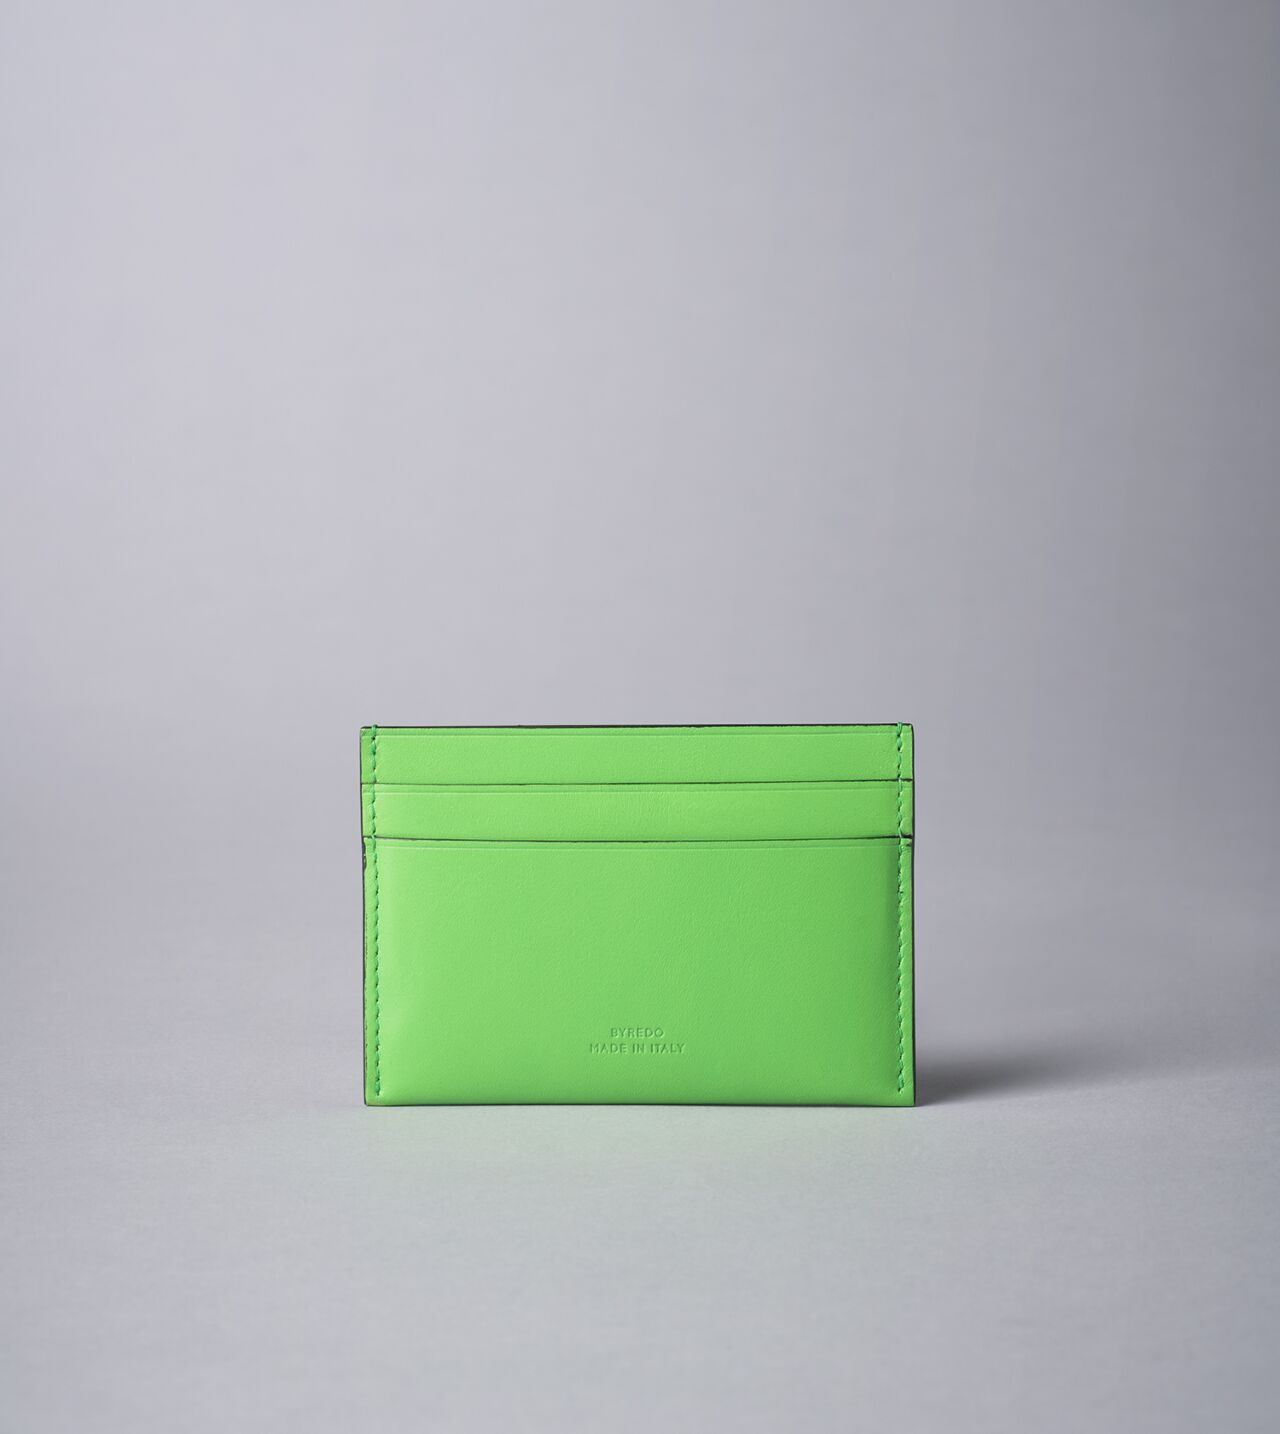 Picture of Byredo Credit card holder in Green leather